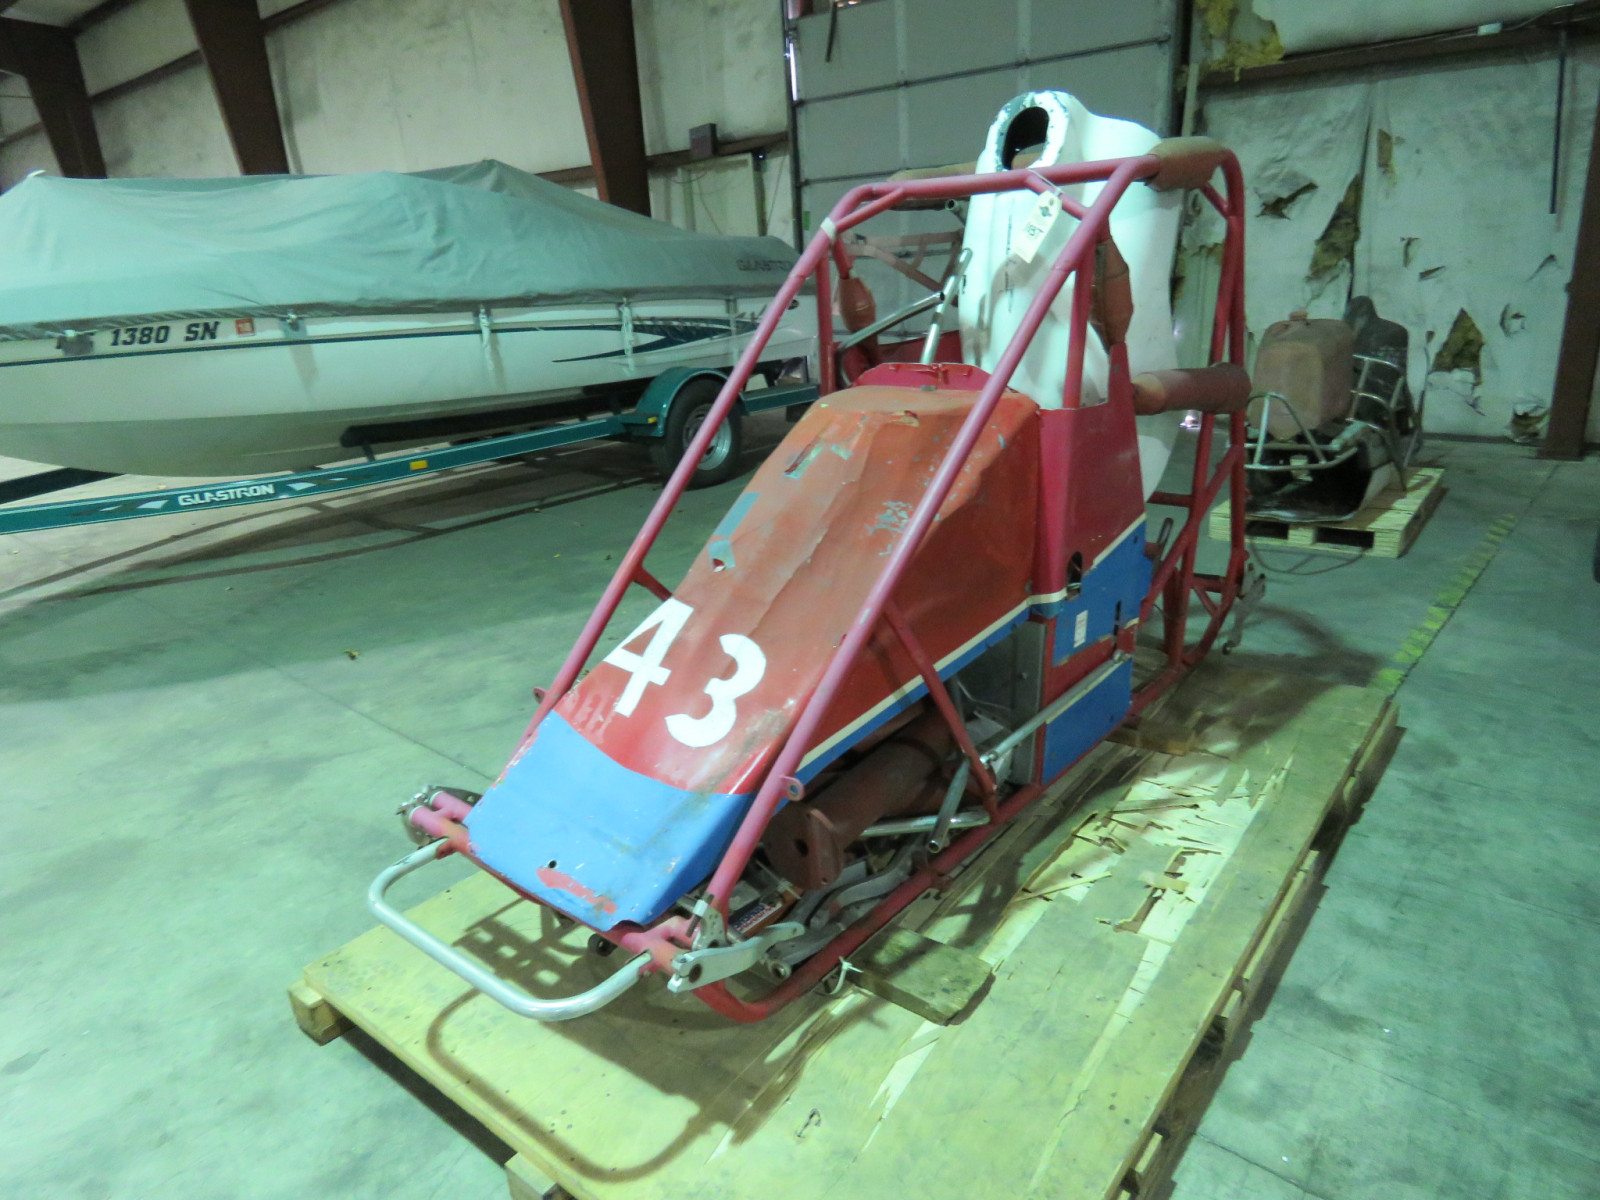 Vintage Home Built Midget Race Car - Image 1